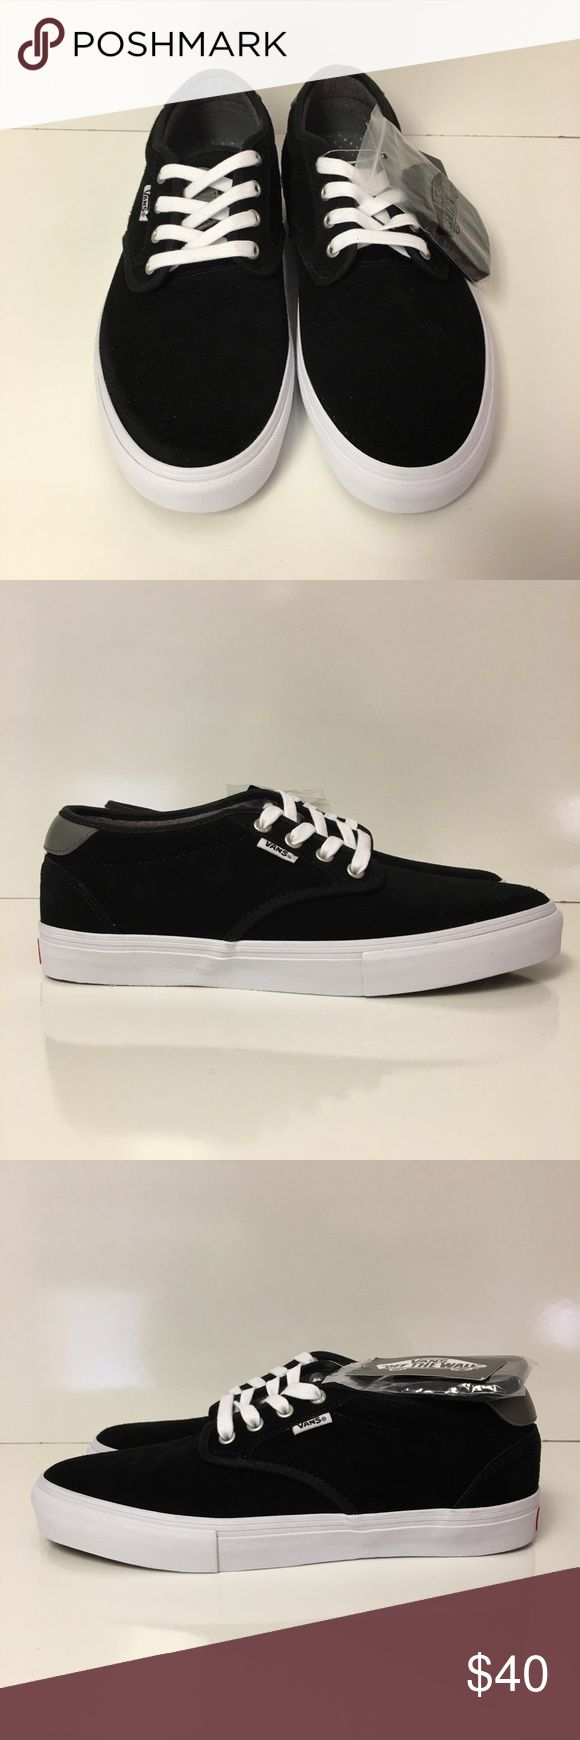 """Vans Chima Ferguson Pro suede sneakers. ** BRAND NEW **  Vans """"Chima Furguson"""" Pro sneakers. Ultra Cush. Size 10 Black suede. Cones with white and black laces. Vans Shoes Sneakers"""